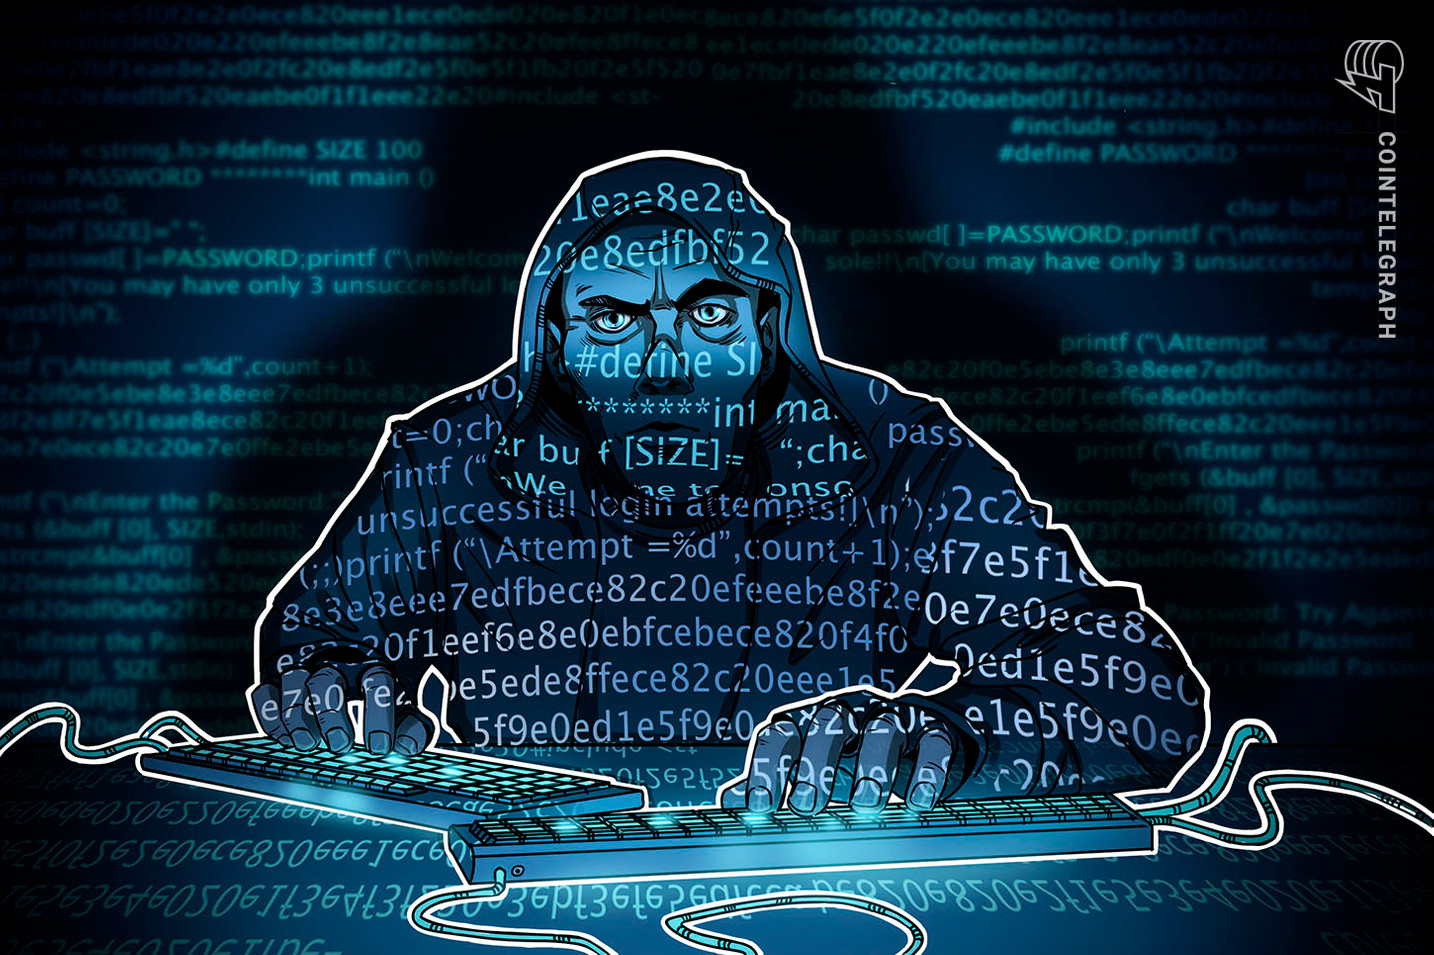 California University Pays Million-Dollar Crypto Ransom